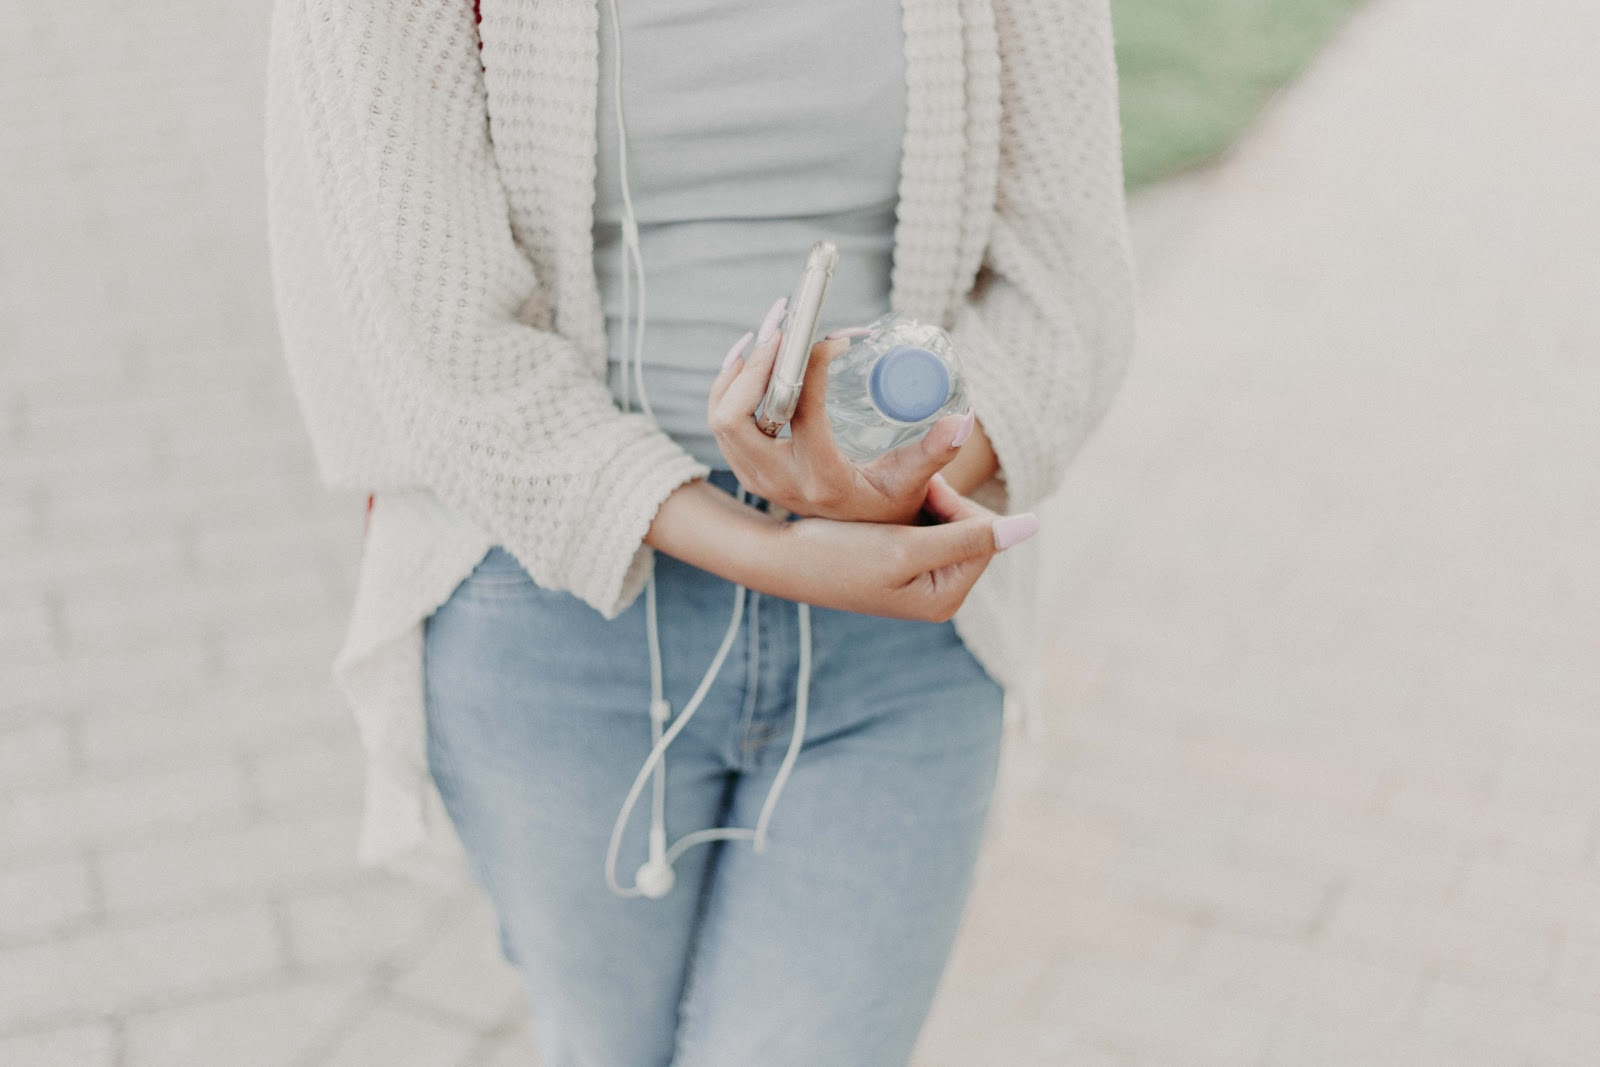 Woman holding water bottle and phone